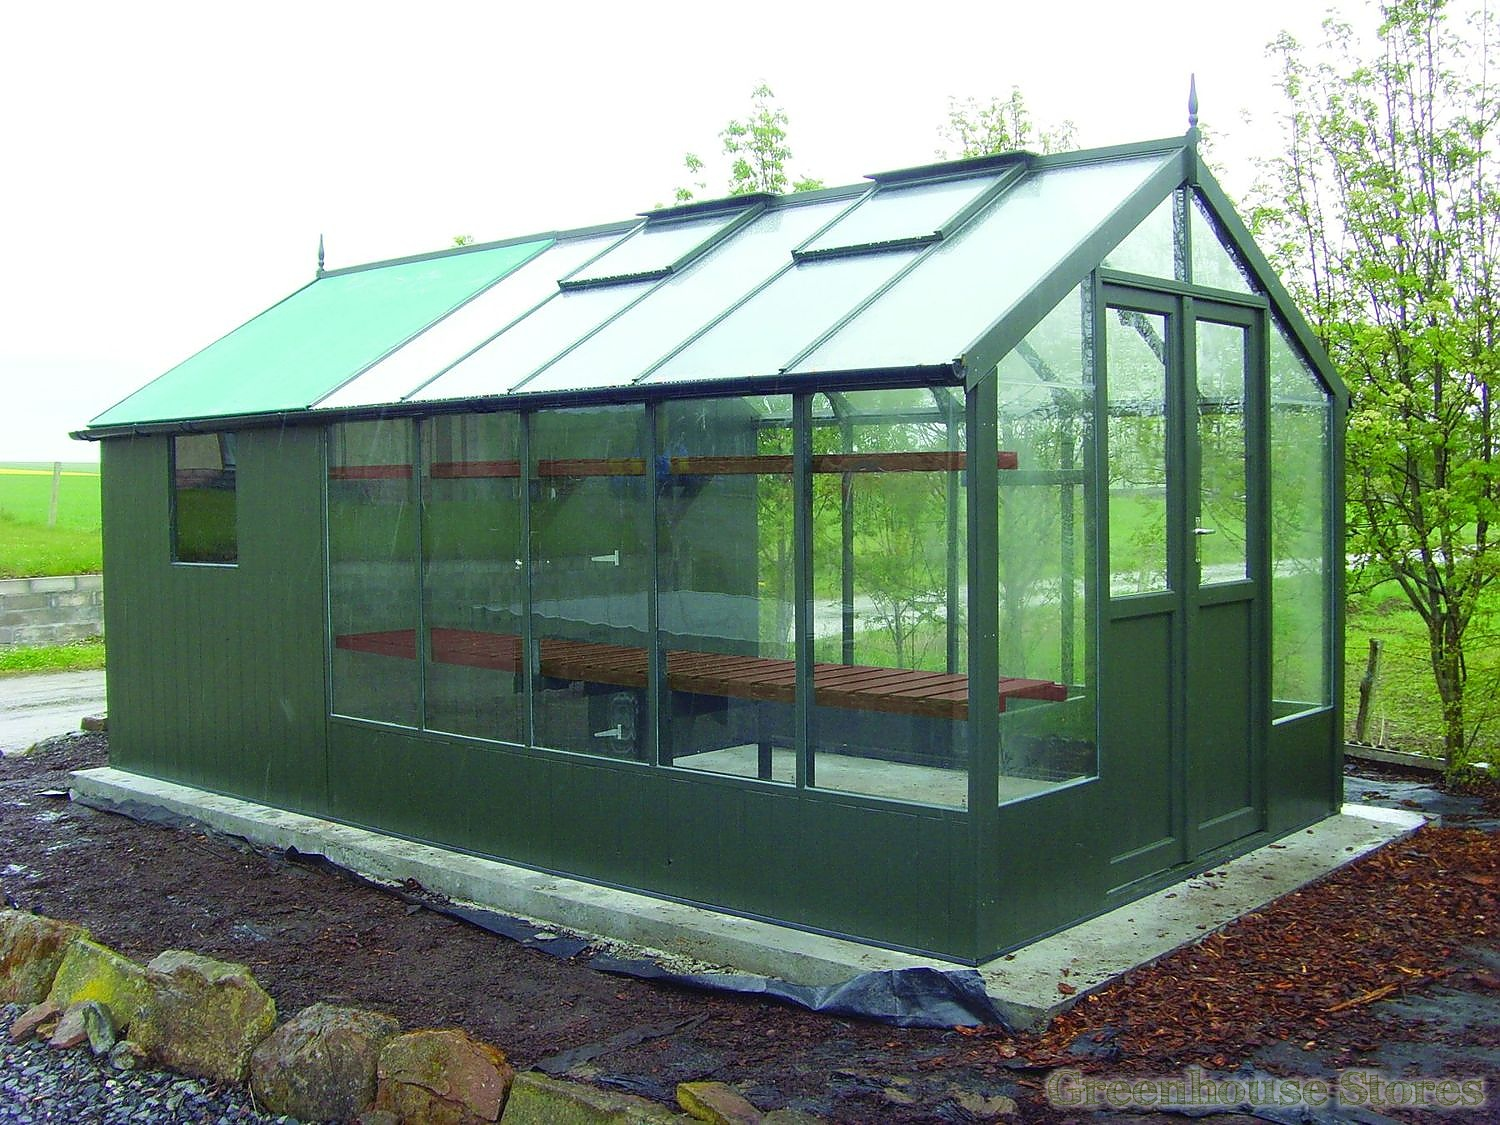 Swallow raven 8x14 wooden greenhouse greenhouse stores Green house sheds